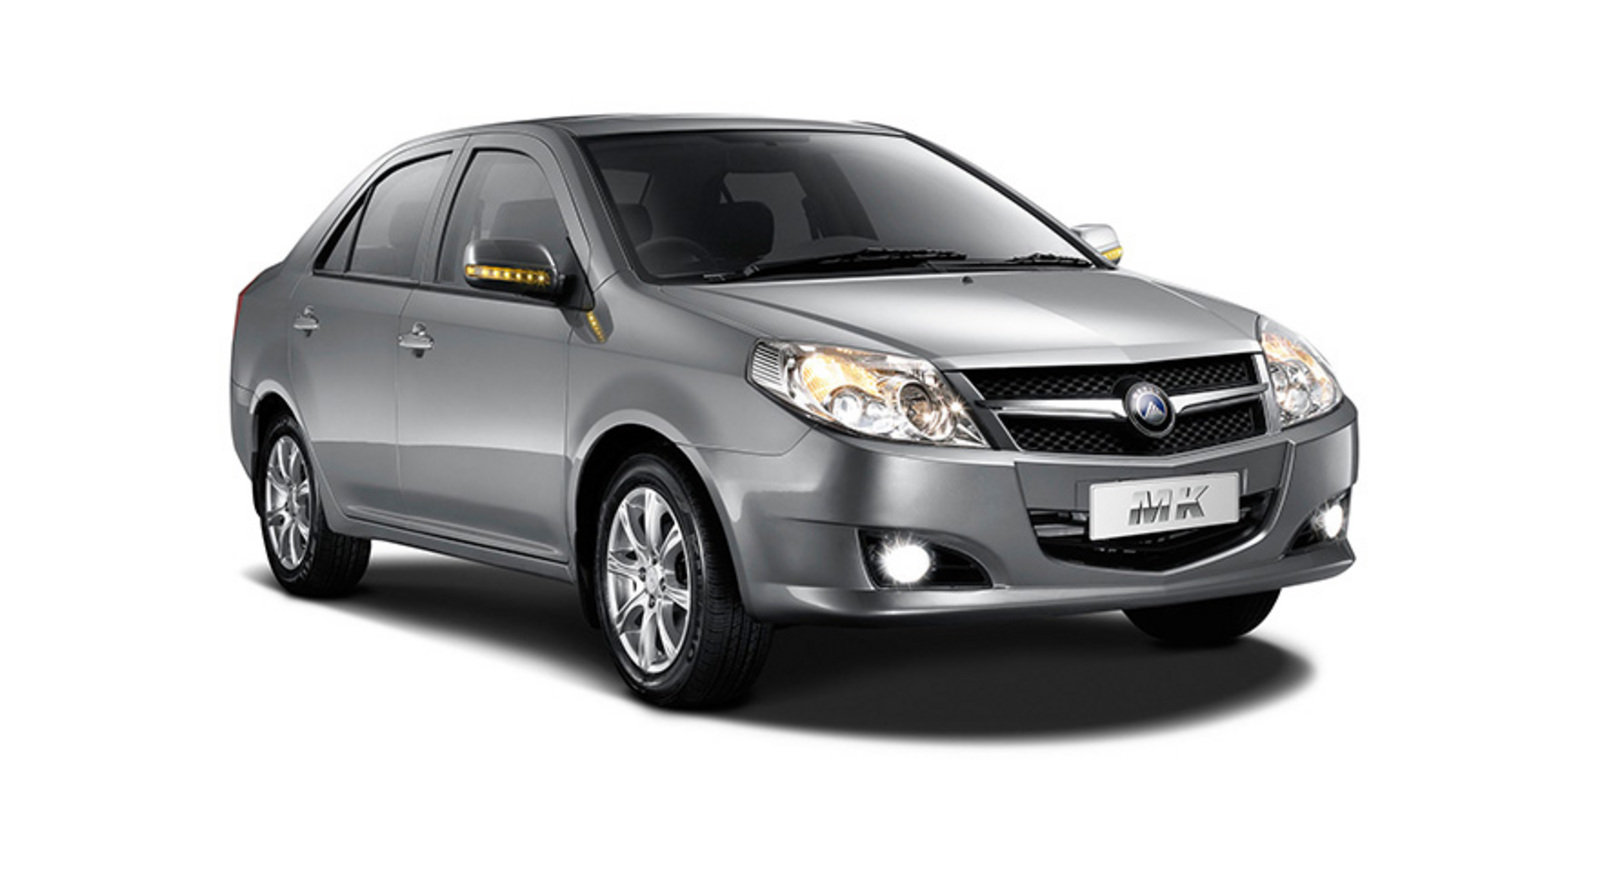 2014 Geely Mk Review - Gallery